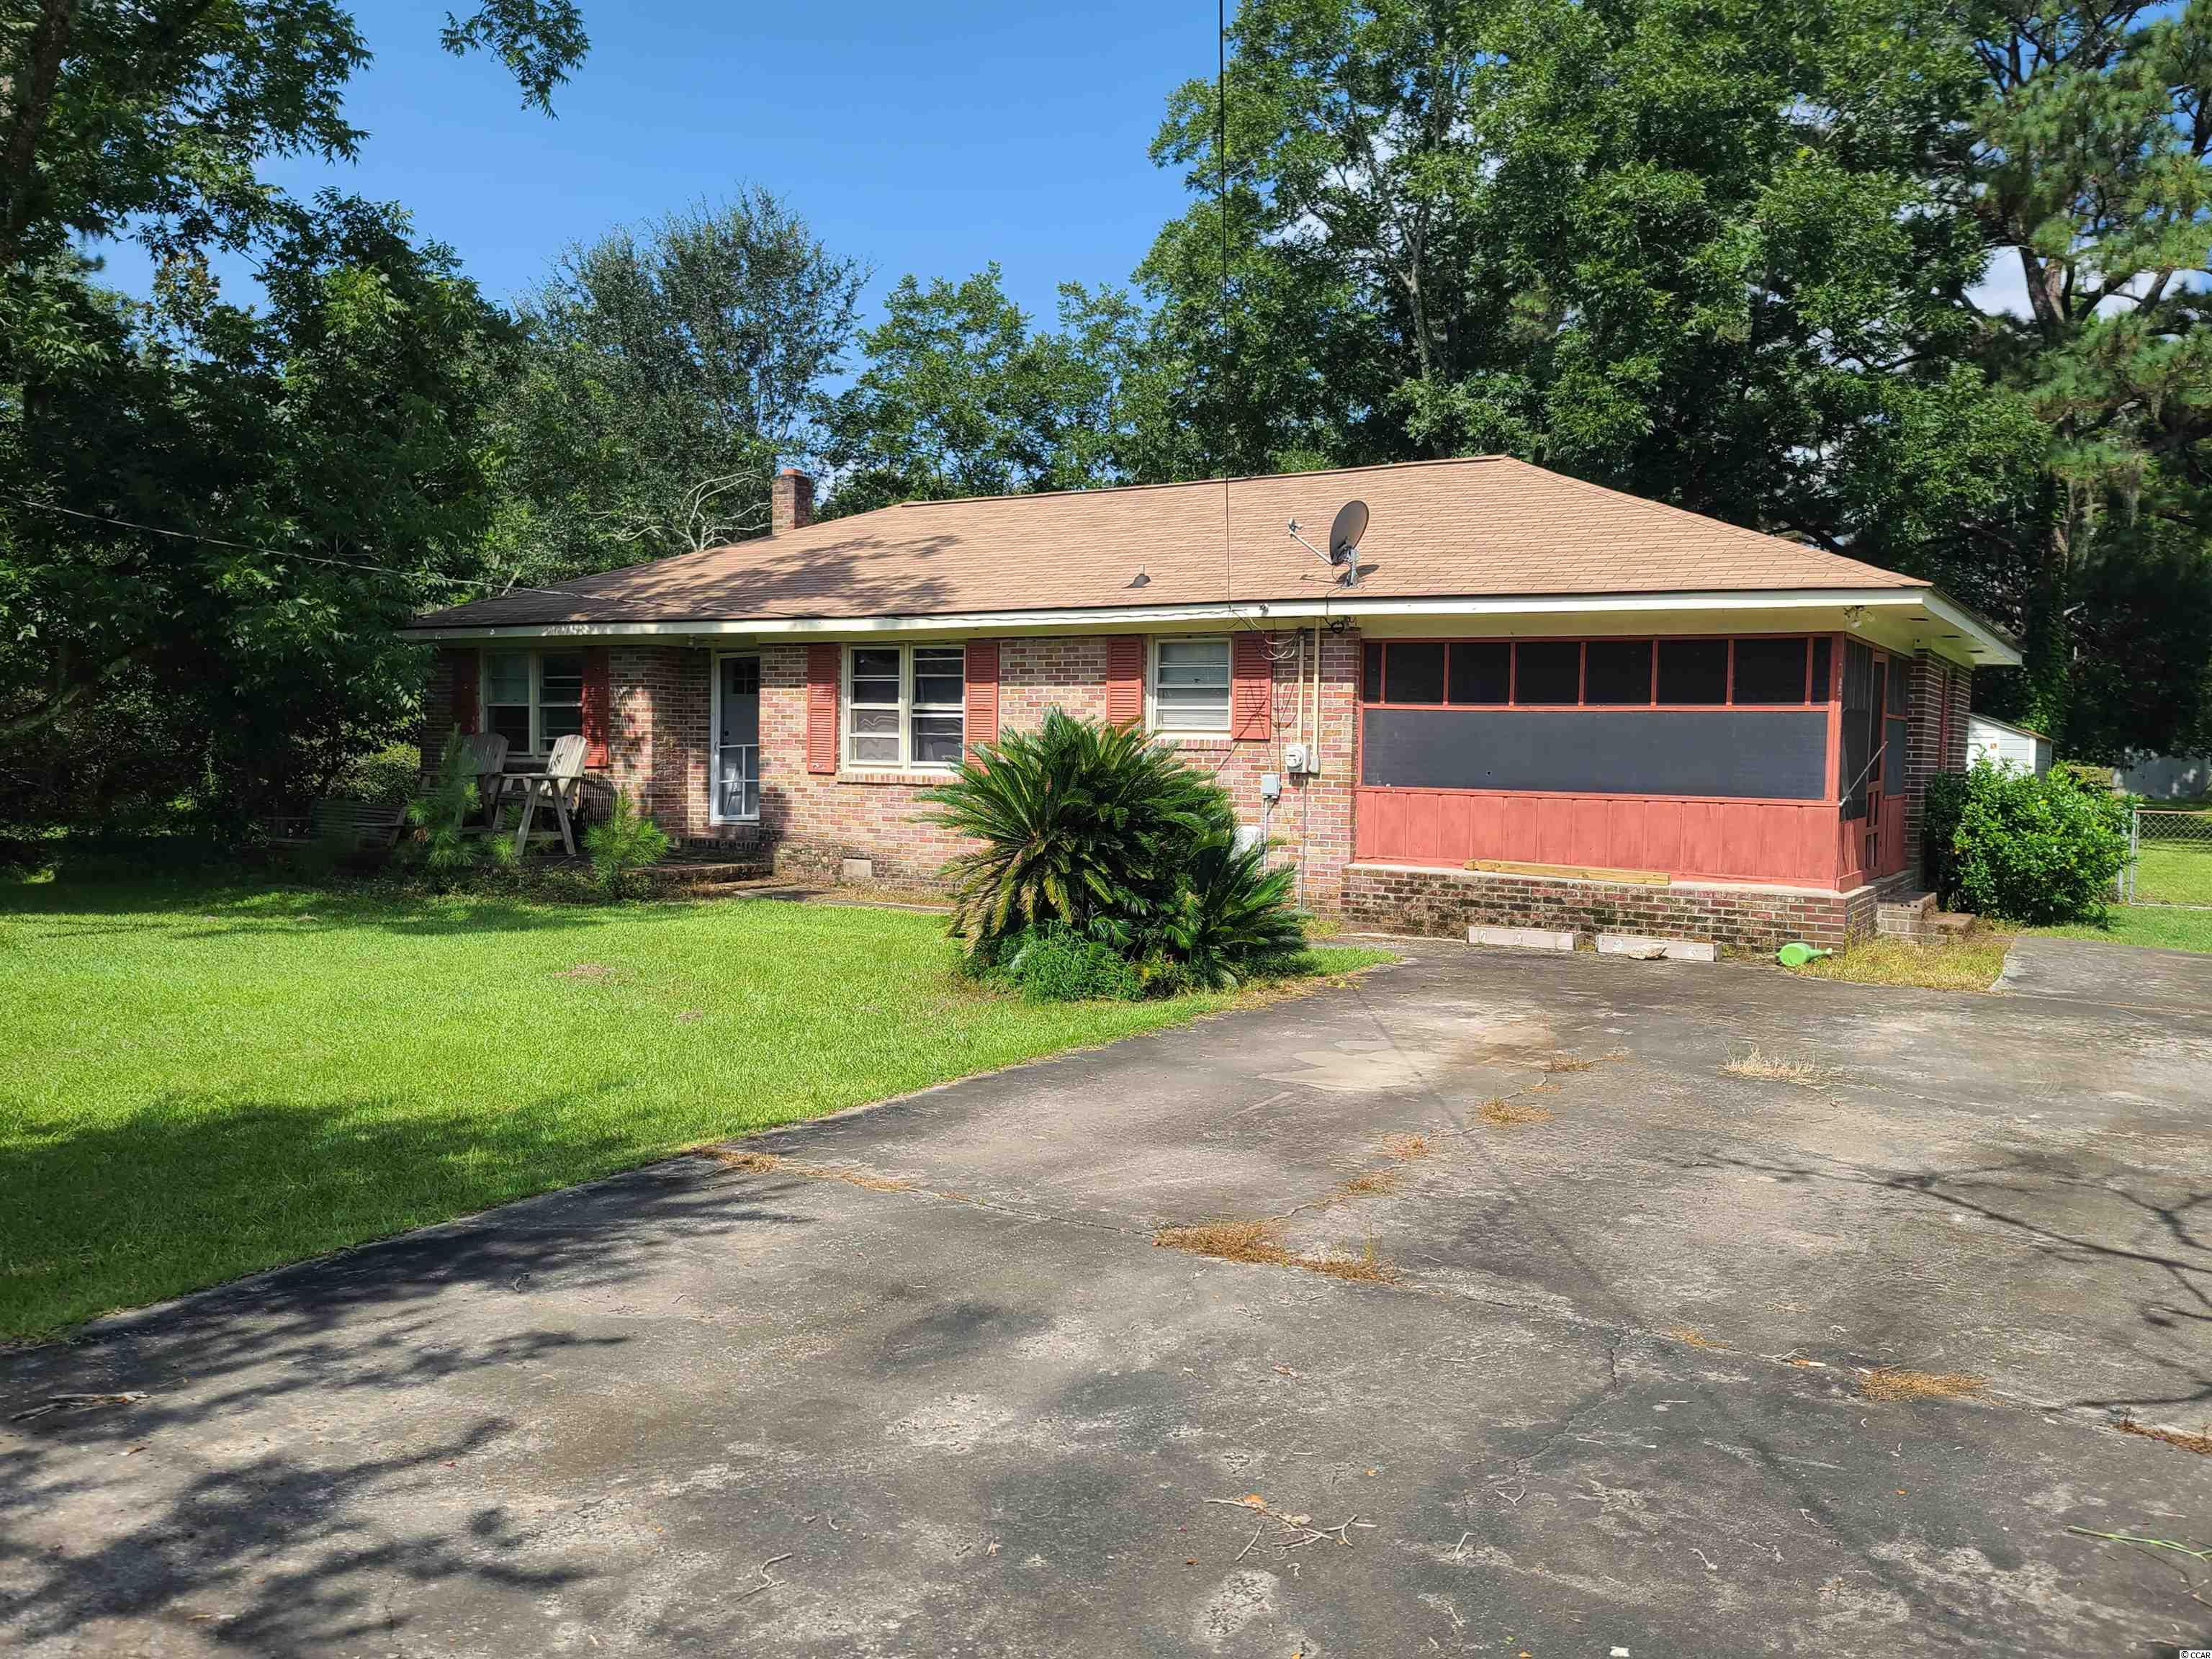 Home is being Sold As Is. This is a GREAT value on this 3bedroom 2 bath home on a huge double lot (fenced in back yard) with lots of mature trees. Home has a screened in porch, large driveway and a detached storage shed. This wont last long! Needs a little TLC.